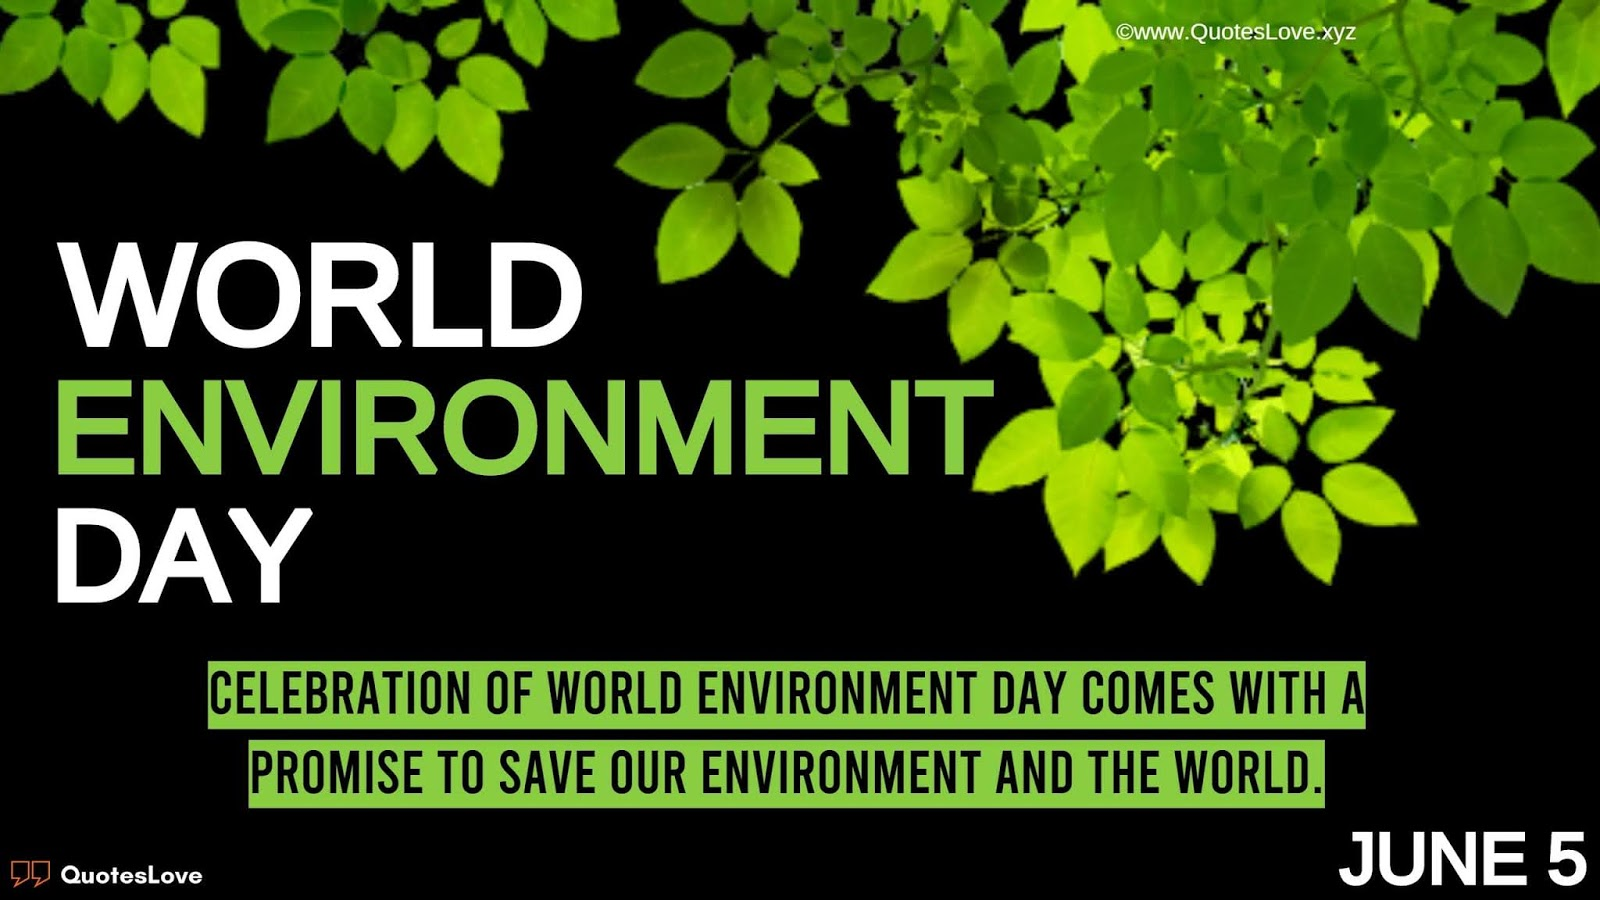 World Environment Day Quotes, Wishes, Messages, Greetings, Themes, Images, Pictures, Wallpaper